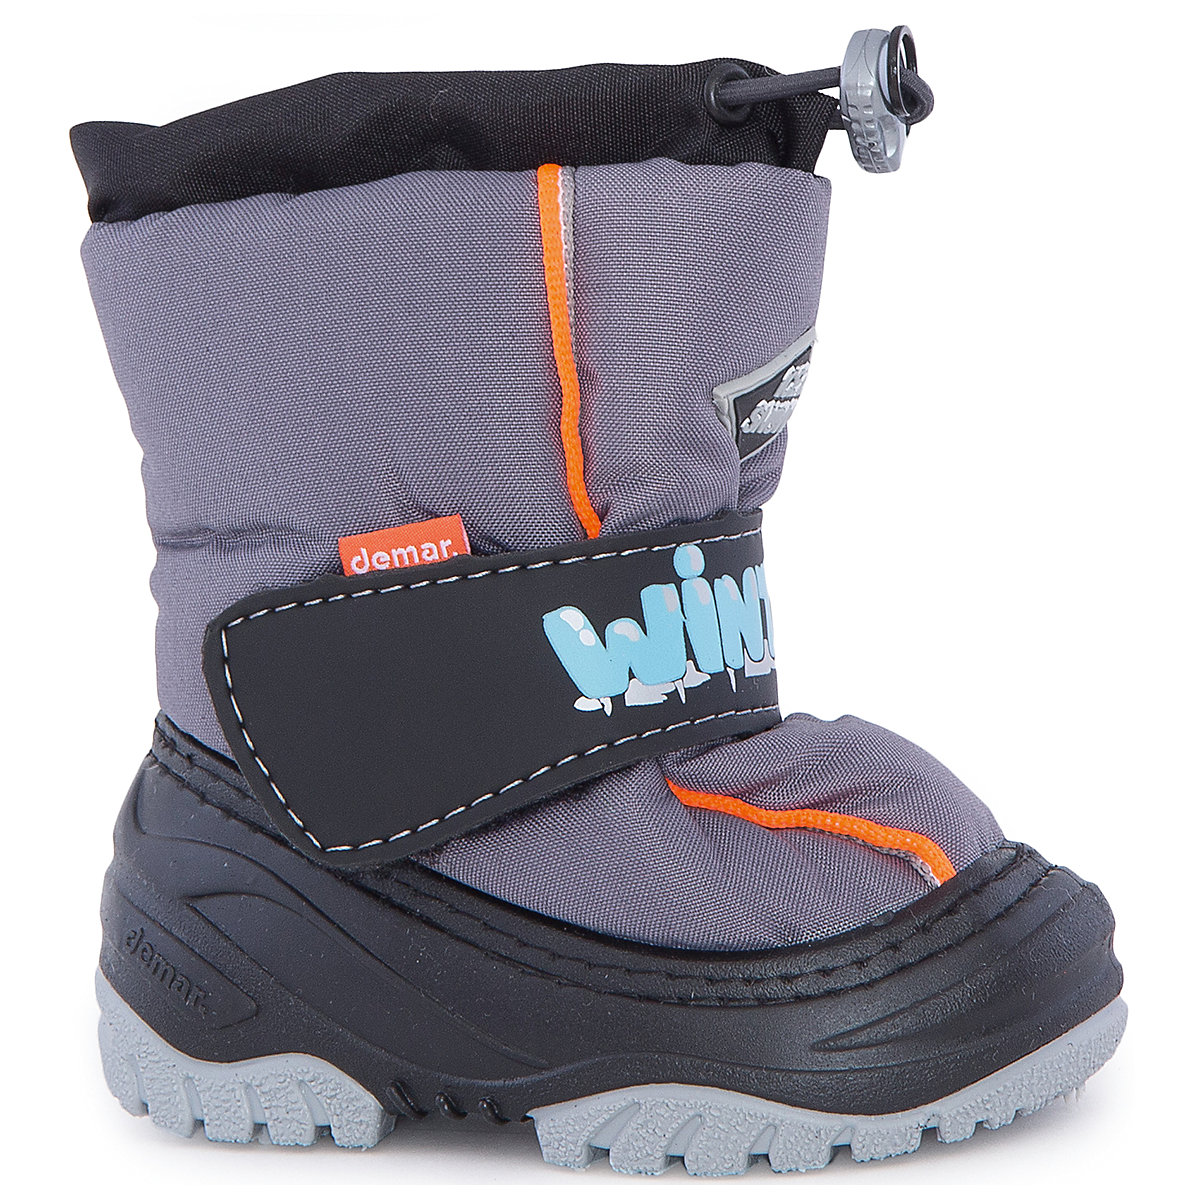 Boots Demar For Boys And Girls 6835180 Valenki Uggi Winter Baby Kids Children Shoes Master 5098191 MTpromo